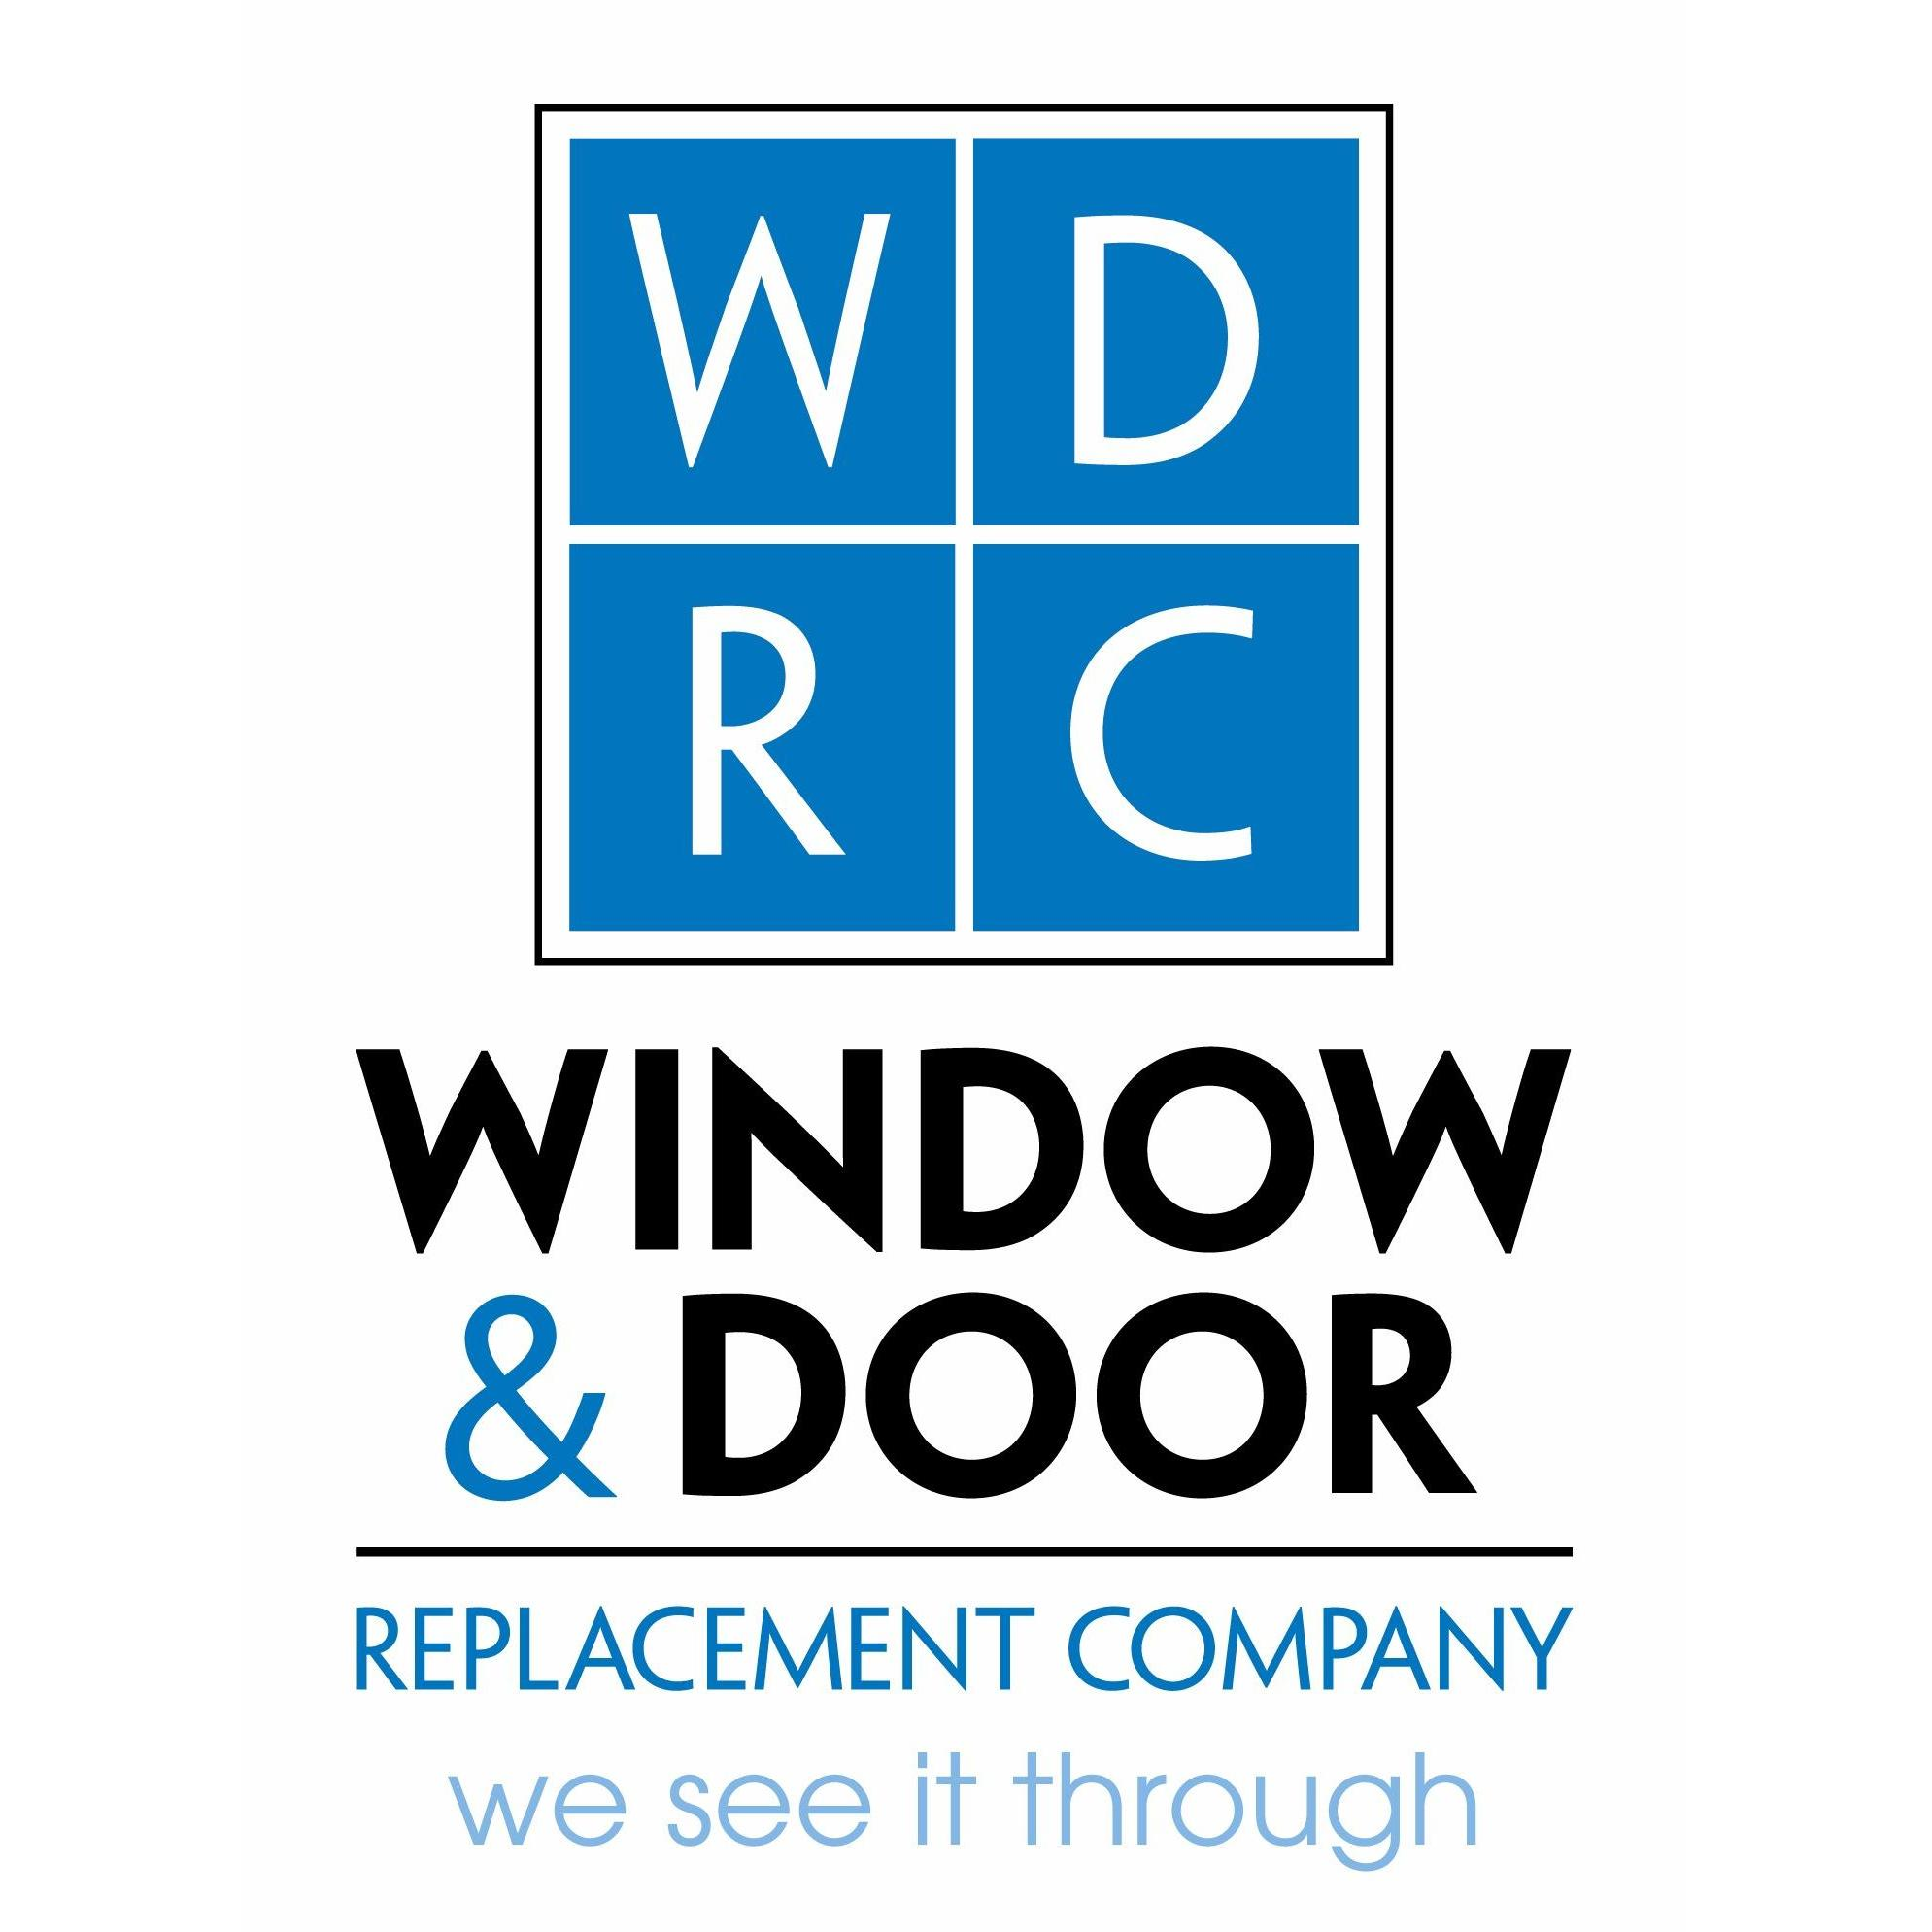 The Window and Door Replacement Company